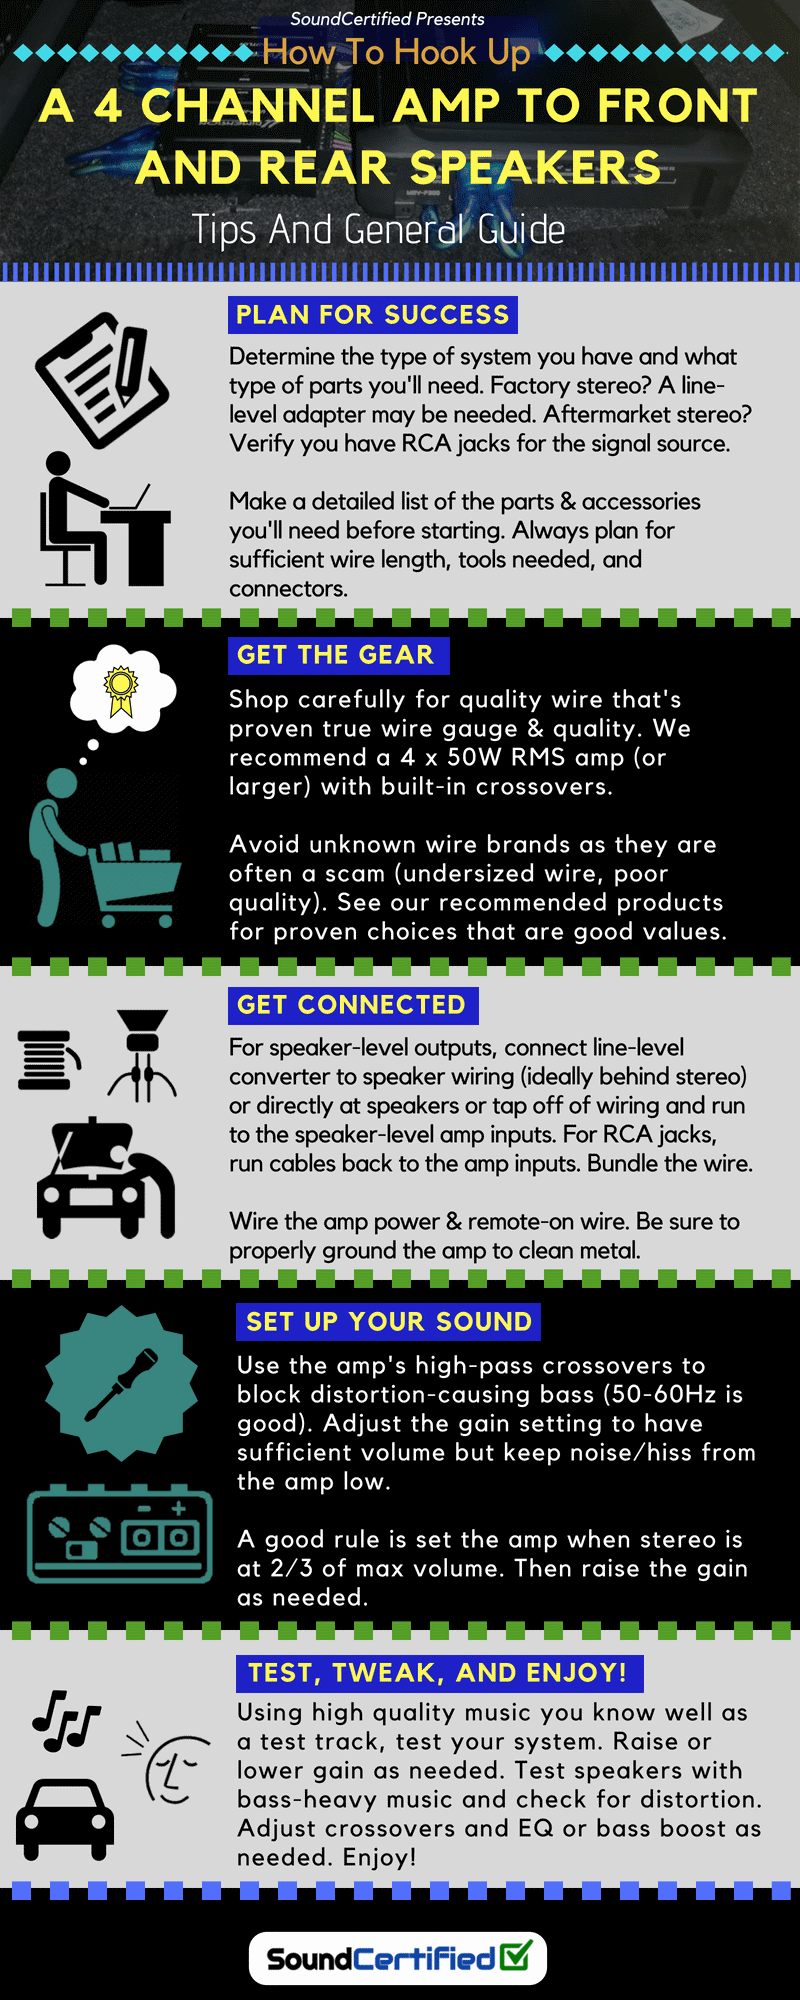 How To Hook Up A 4 Channel Amp Front And Rear Speakers Sound Sony 600w Wiring Diagram Infographic